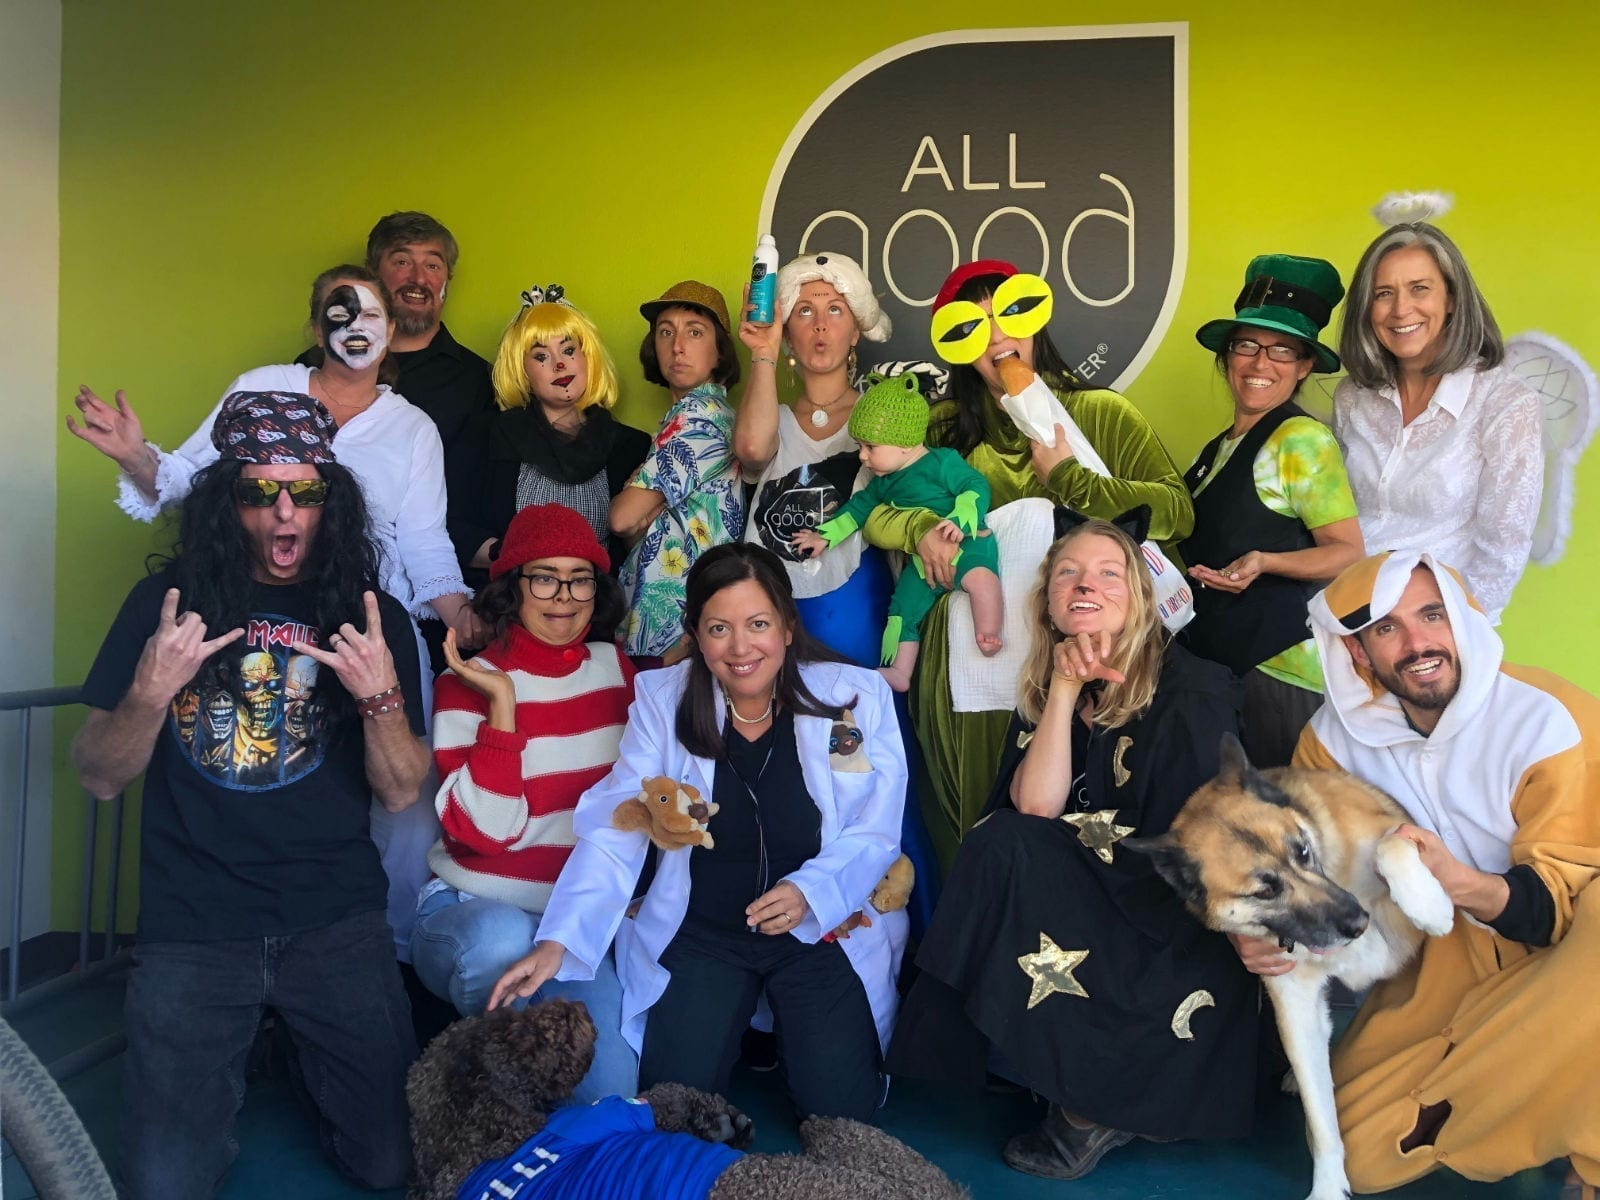 Members of the All Good team dressed in Halloween costumes strike a pose in front of the office logo.